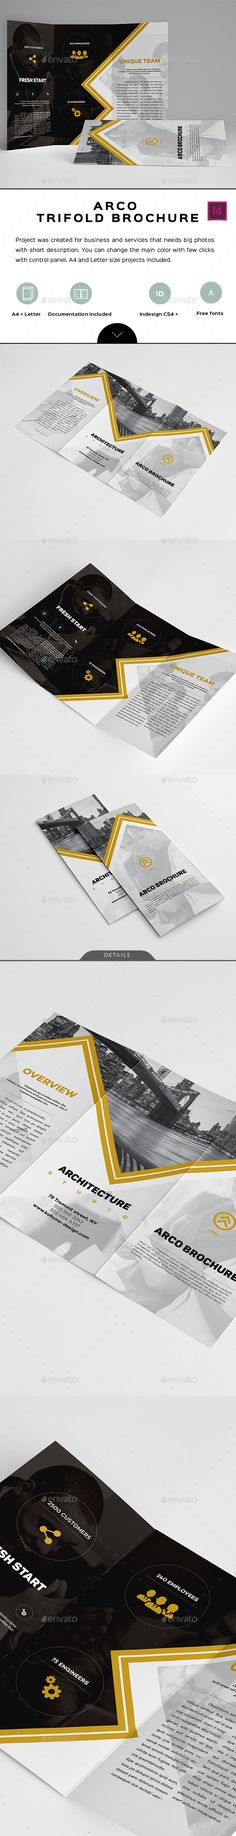 Arco Trifold Brochure Template InDesign INDD. Download here: https://graphicriver.net/item/arco-trifold-brochure/17043229?ref=ksioks